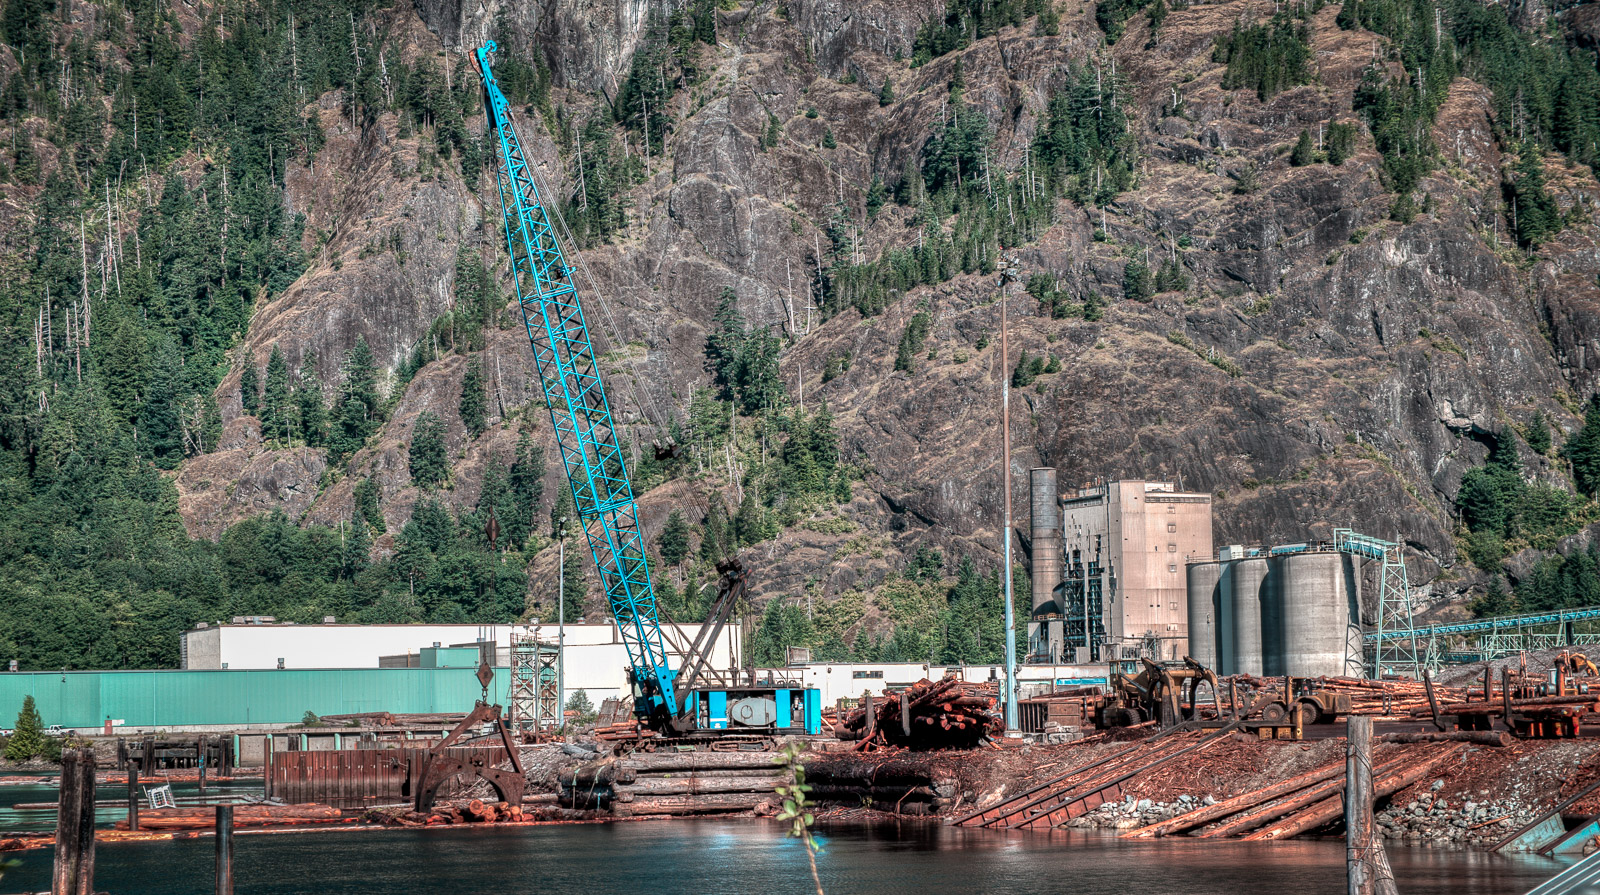 Here is the heart of business. A log sorting shoreline. Logs come in by trucks and by water. This giant crane scoops them up for processing. Some go to local mills but I expect that many are shipped to Asia. The next shot shows a vessel awaiting to do that. (I can't confirm that it is going to Asia; it could be going to a BC mill?)